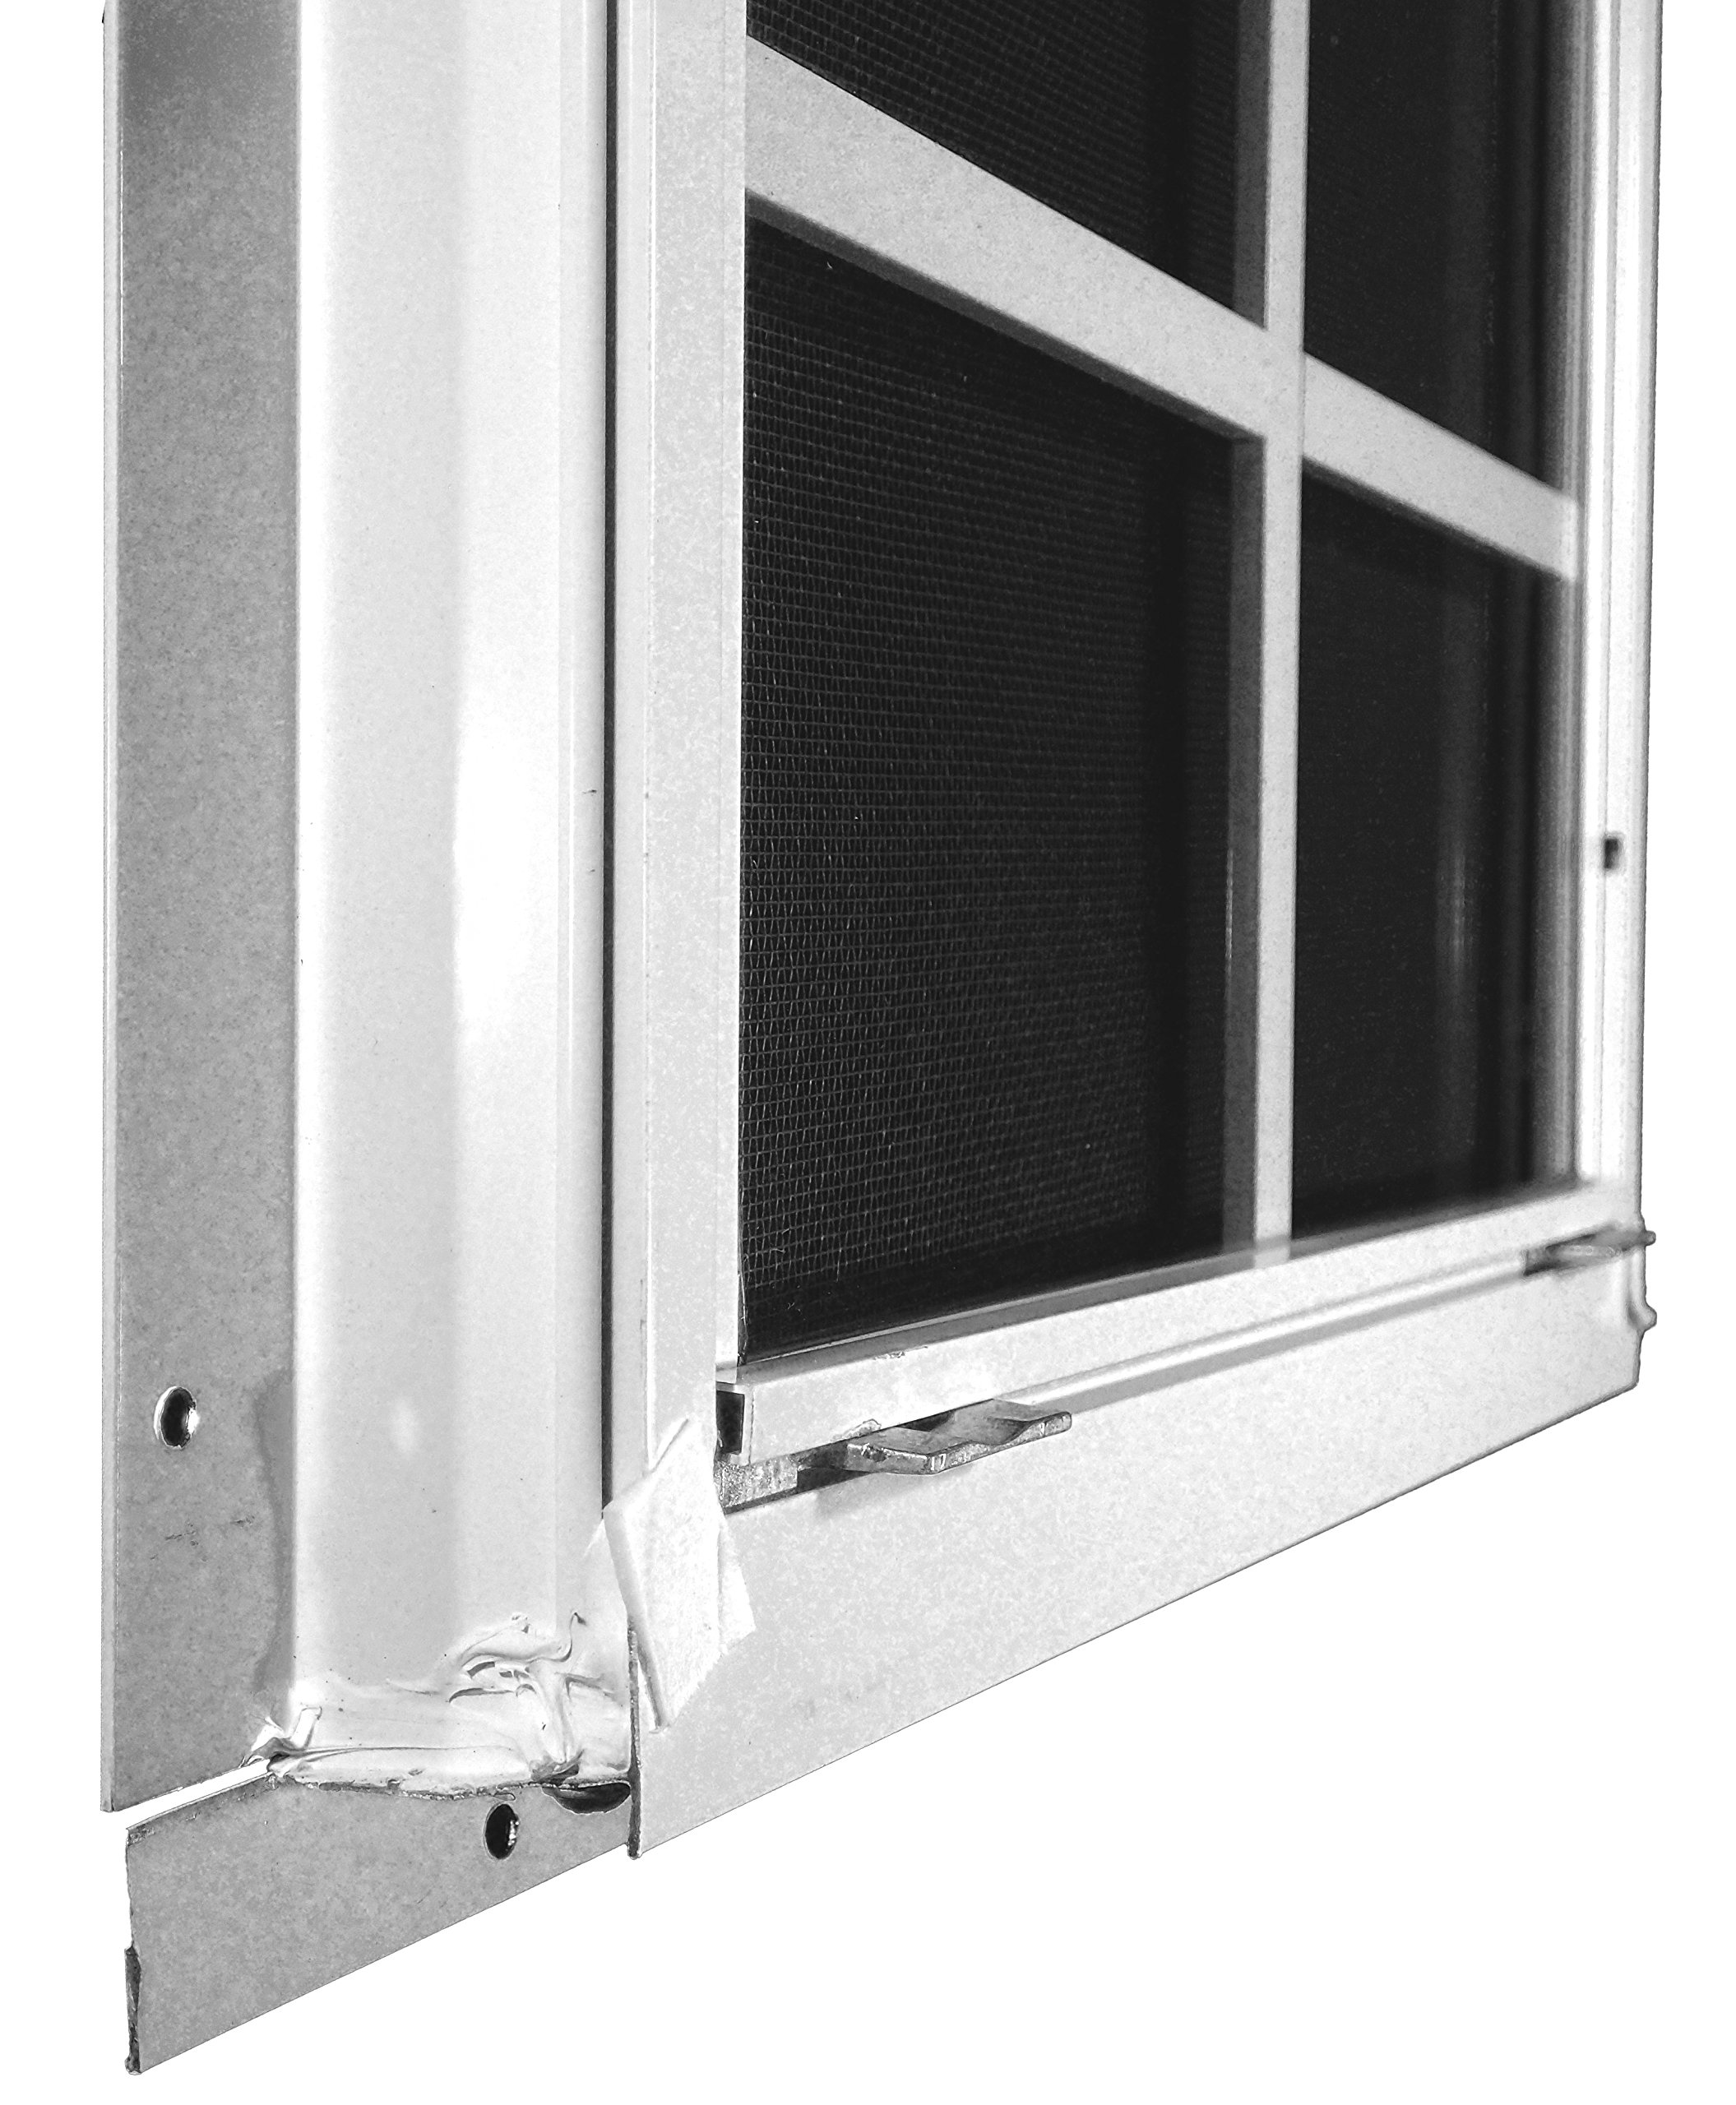 Shed Windows 14'' W x 21'' H - Flush Mount w/ Safety Glass - Playhouse Windows (White) by Outdoor Play and Storage (Image #4)